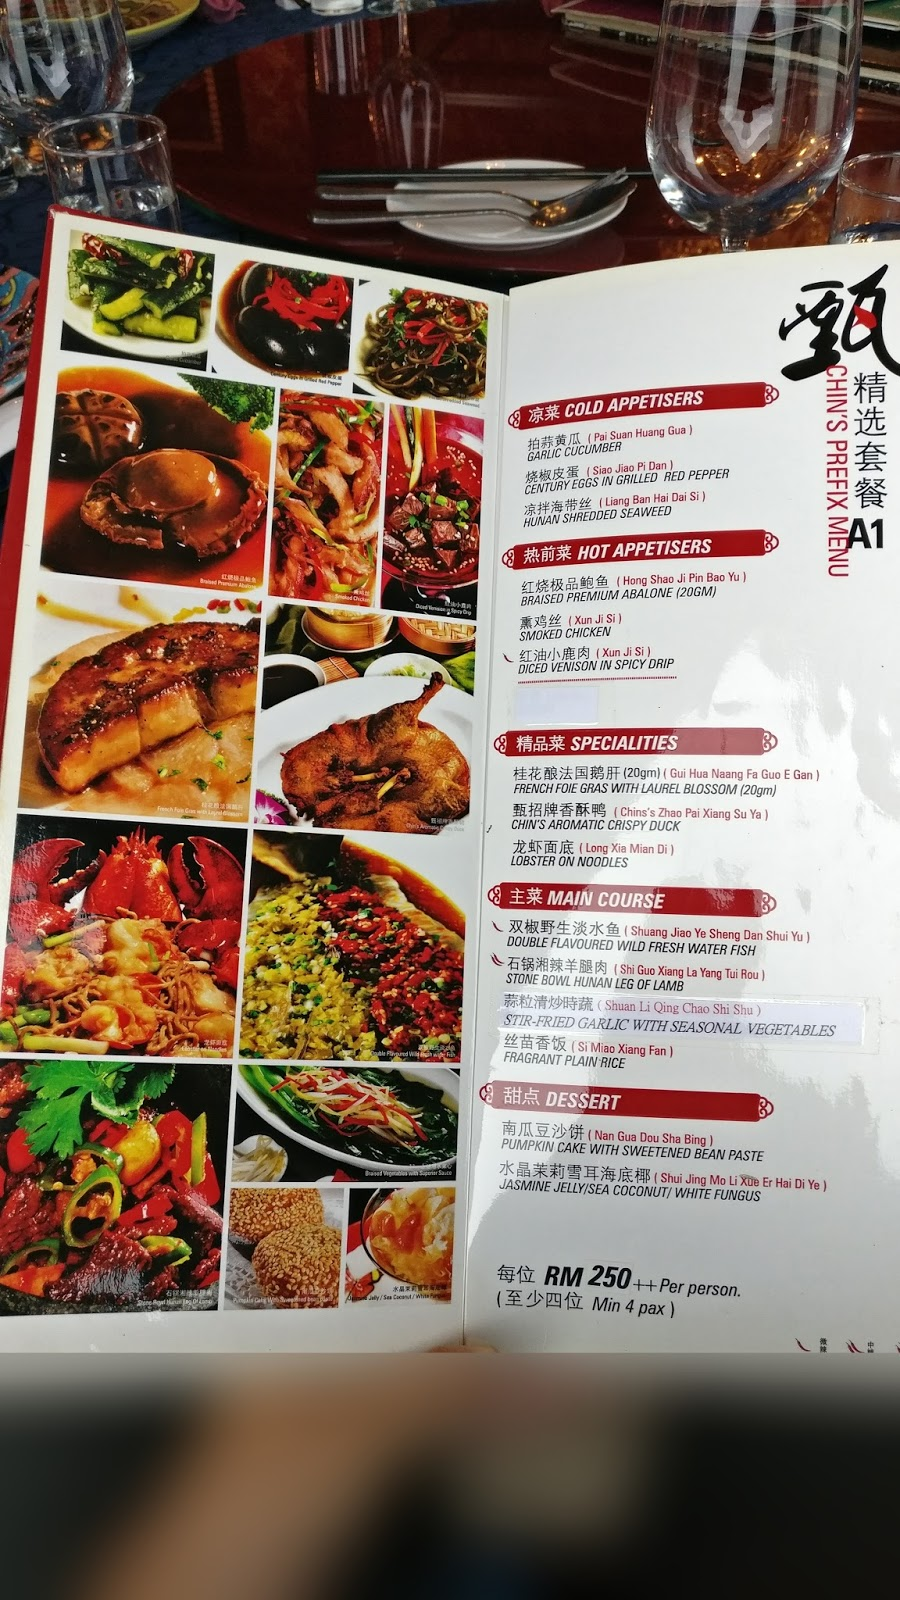 It's About Food!!: Chin's Stylish Chinese Cuisine 甄新派經典中菜 @ Church Street Pier